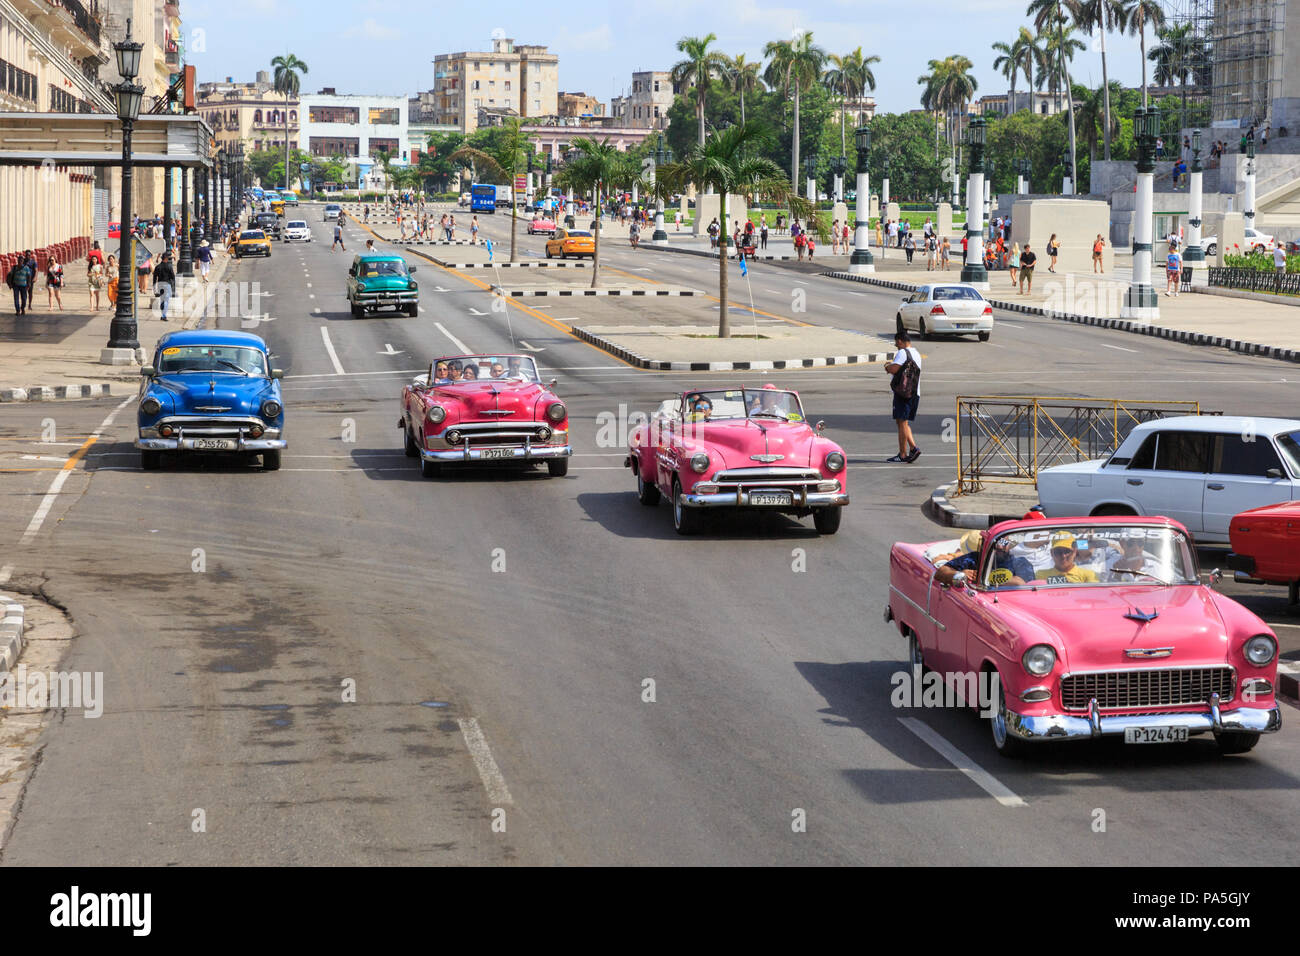 American classic cars, vintage taxies carrying tourists and visitors on Paseo de Marti in Havana, Cuba - Stock Image